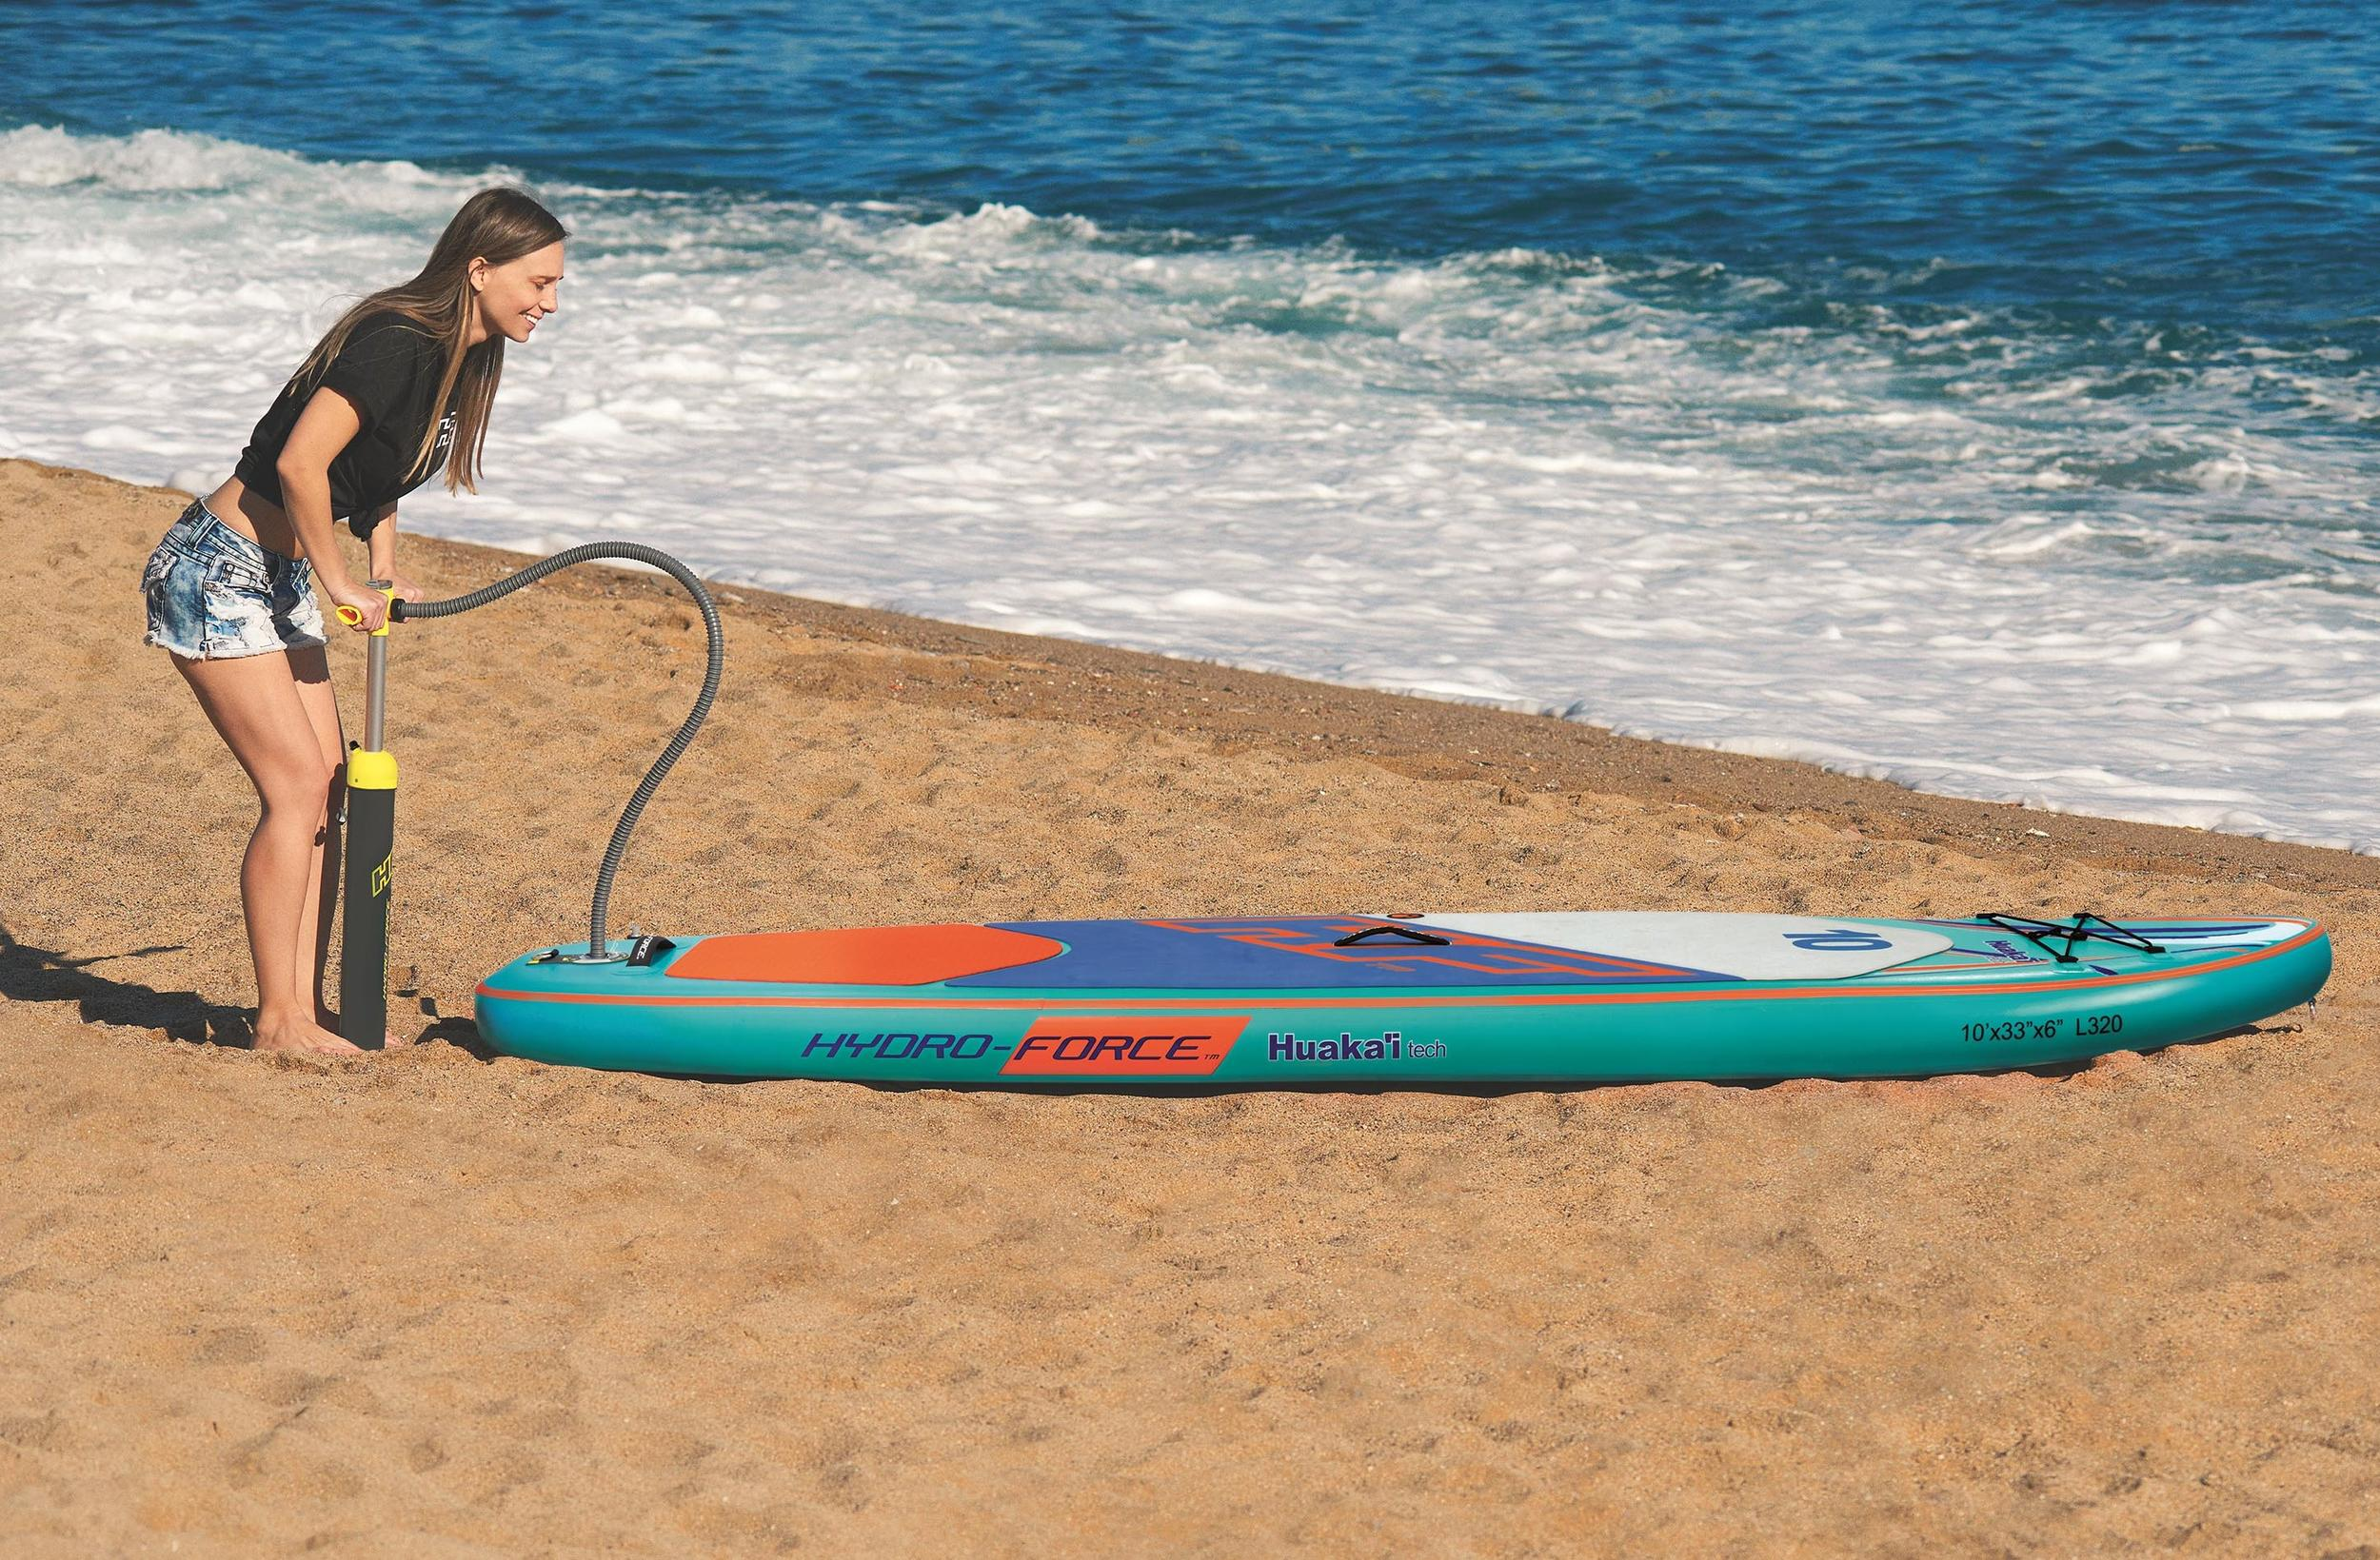 SUP-lauta Bestway Hydro-Force Huaka'i Tech 305x84x15 cm